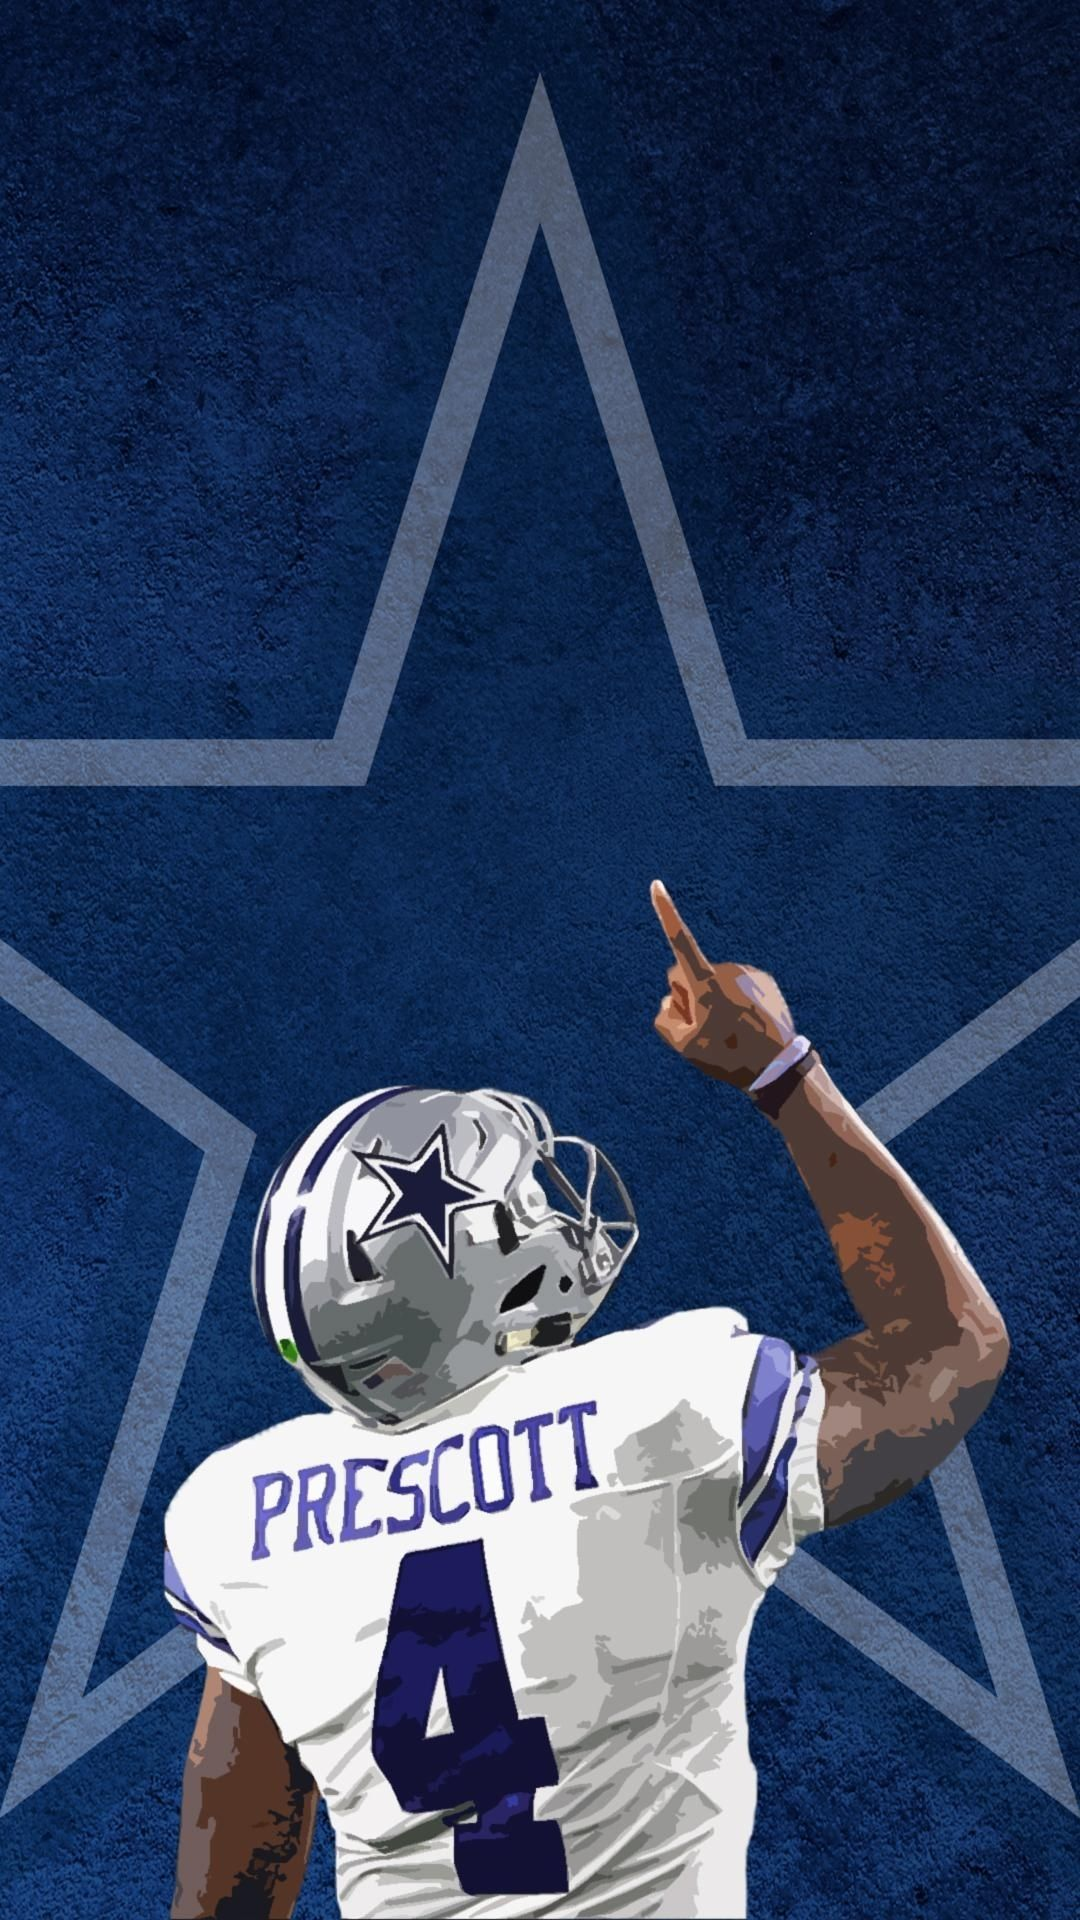 10 New Dak Prescott Iphone Wallpaper FULL HD 1080p For PC